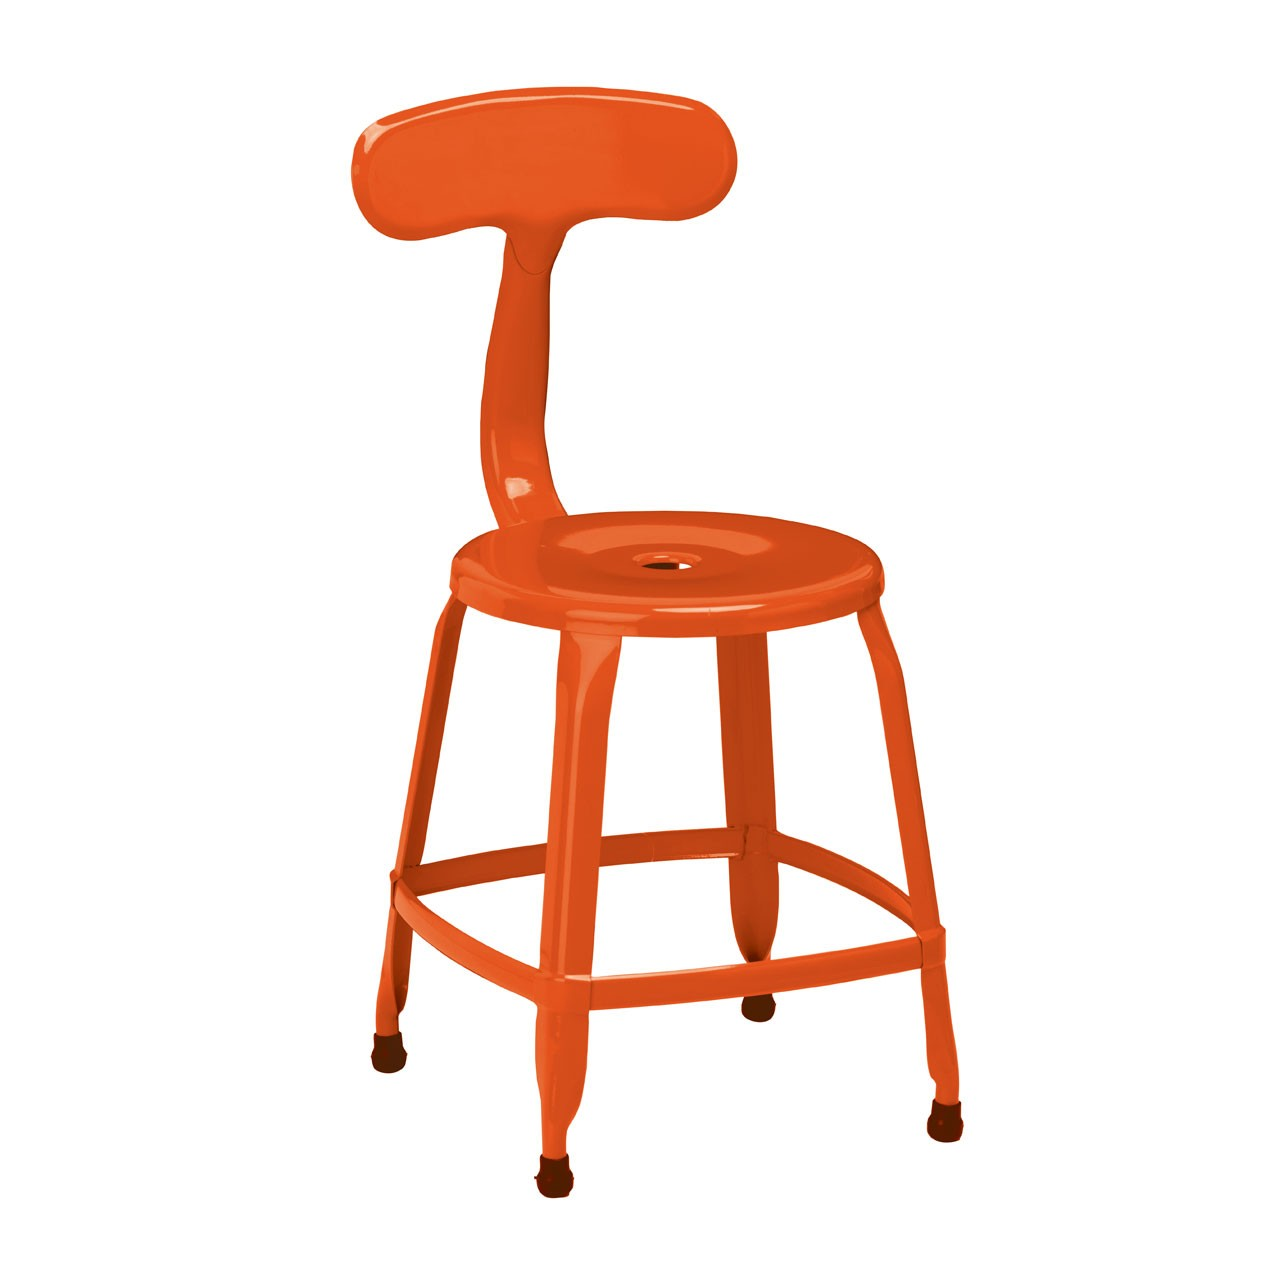 4 x Disc Chair Orange Powder Coated Metal